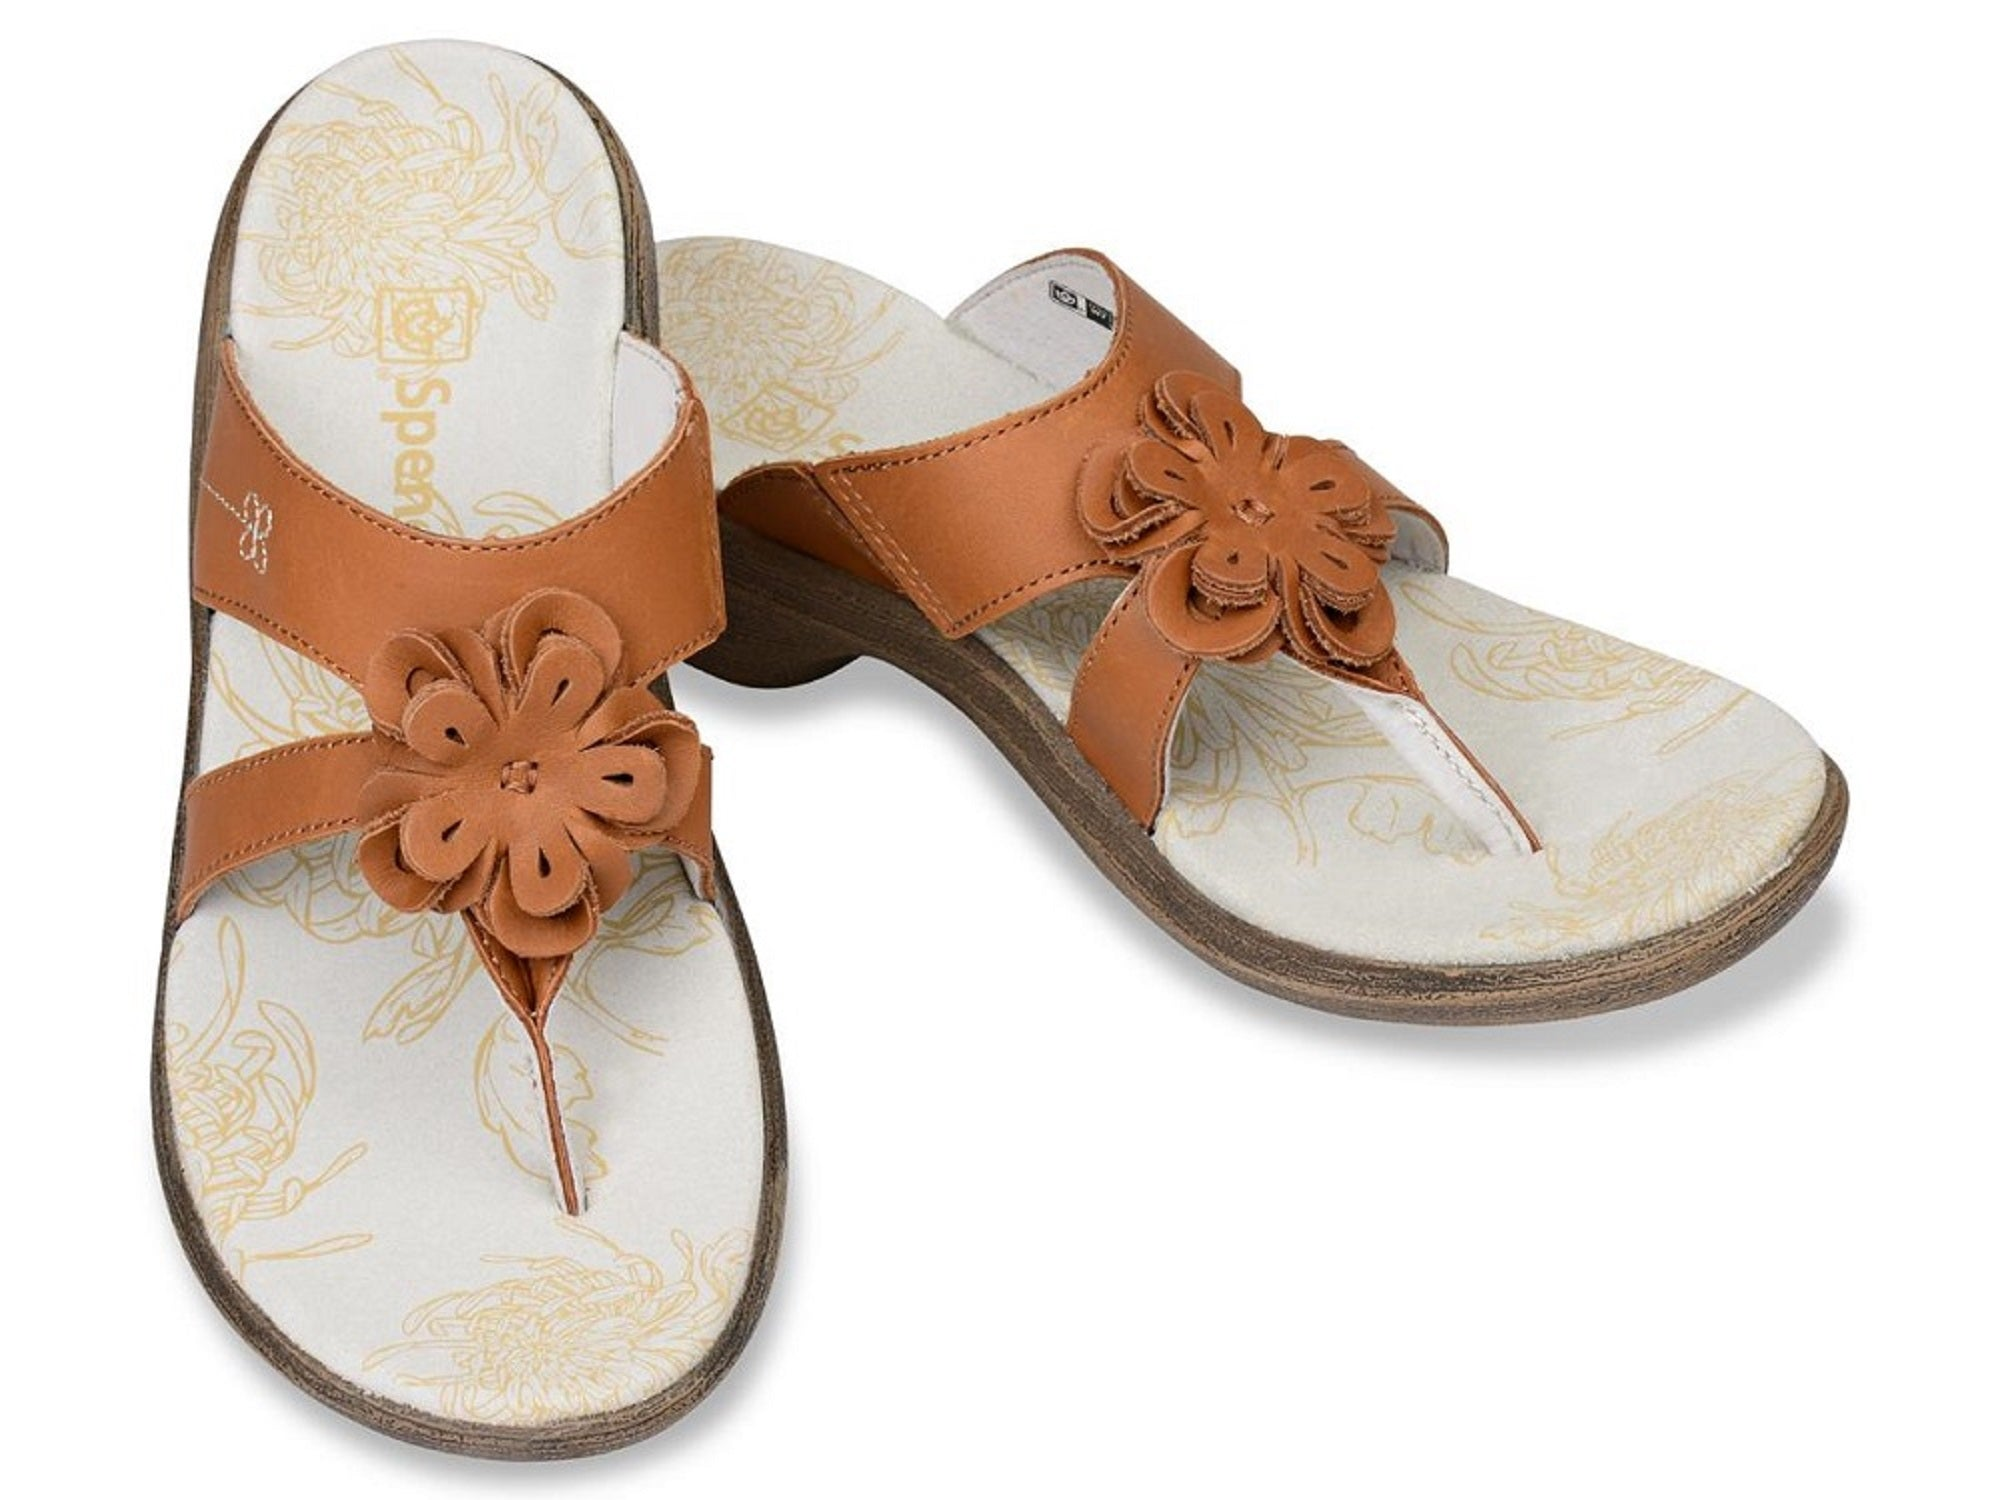 Spenco Rose - Supportive Casual Sandals - Tan Women's - Size 5